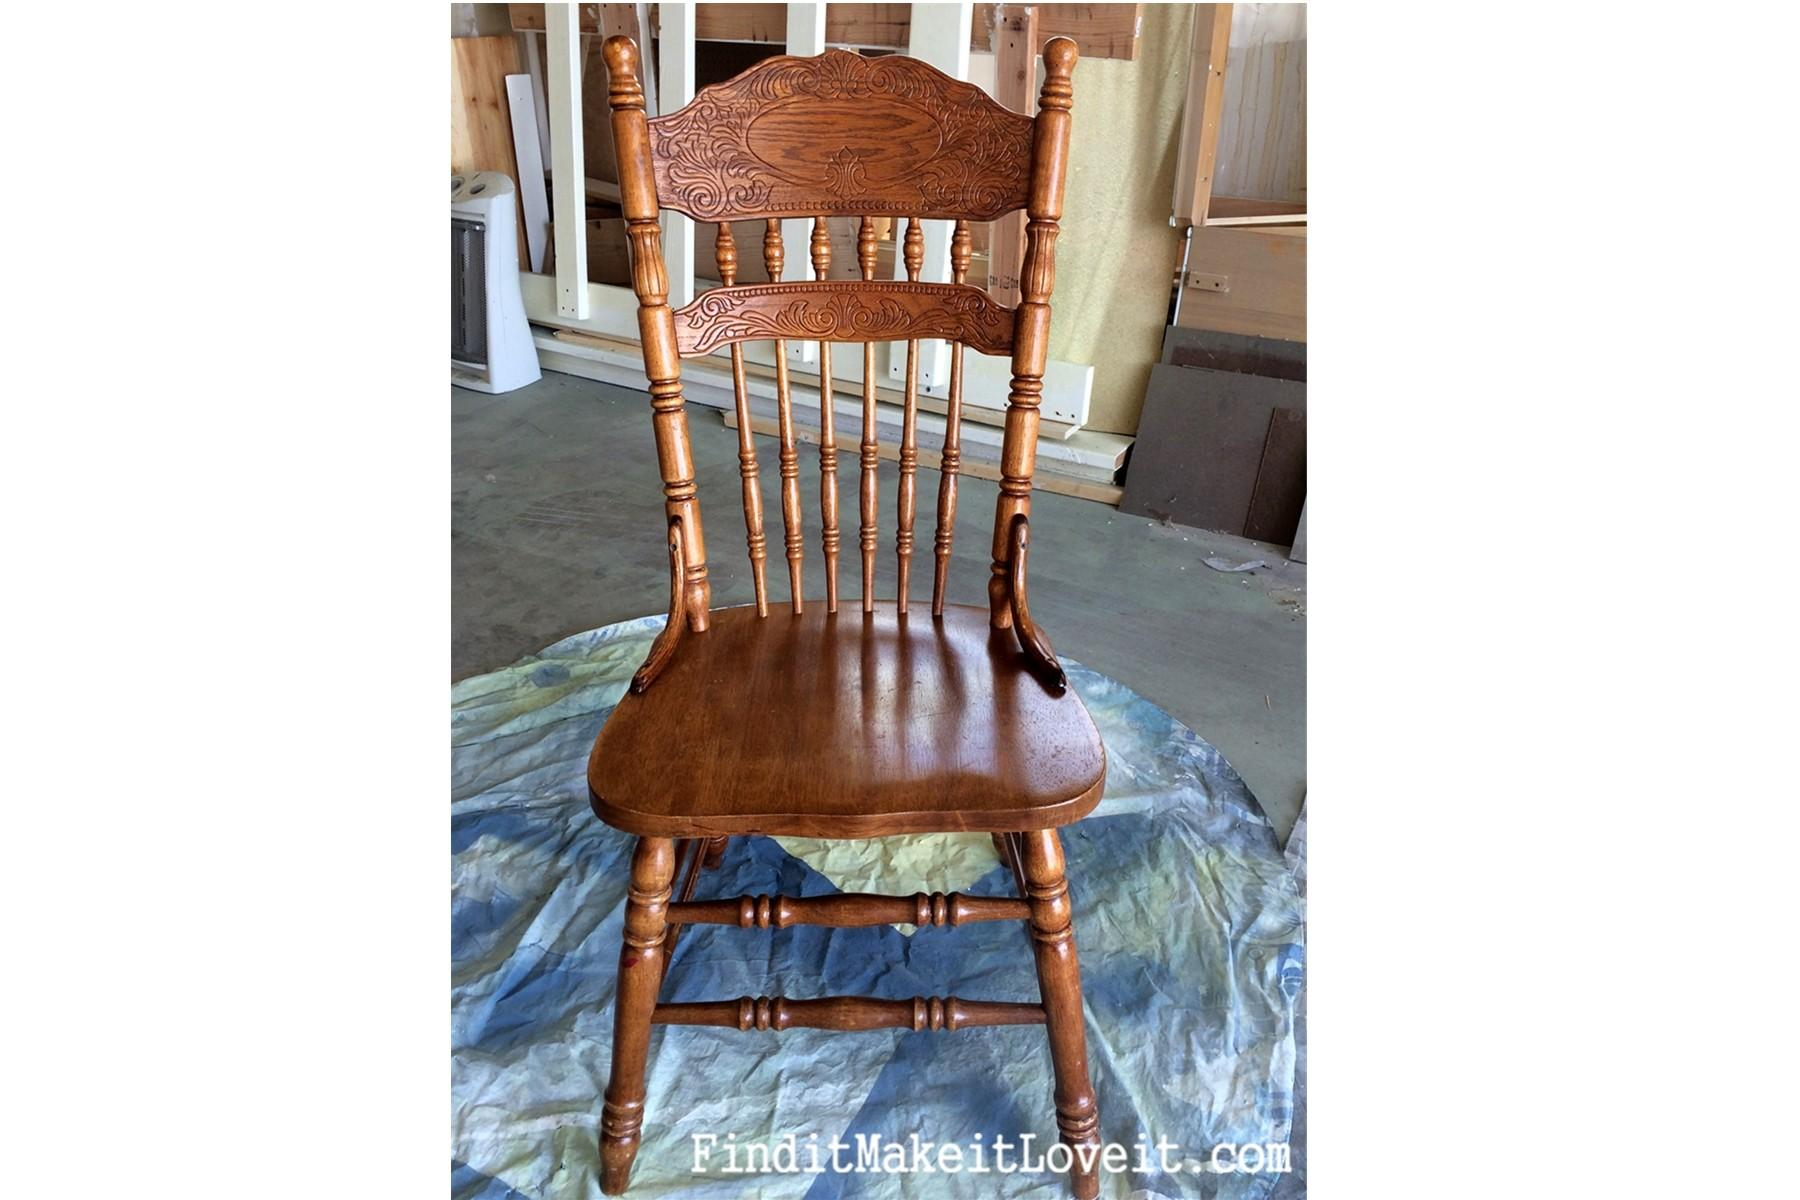 Finished Chairs Diy Chalk Paint Find Make